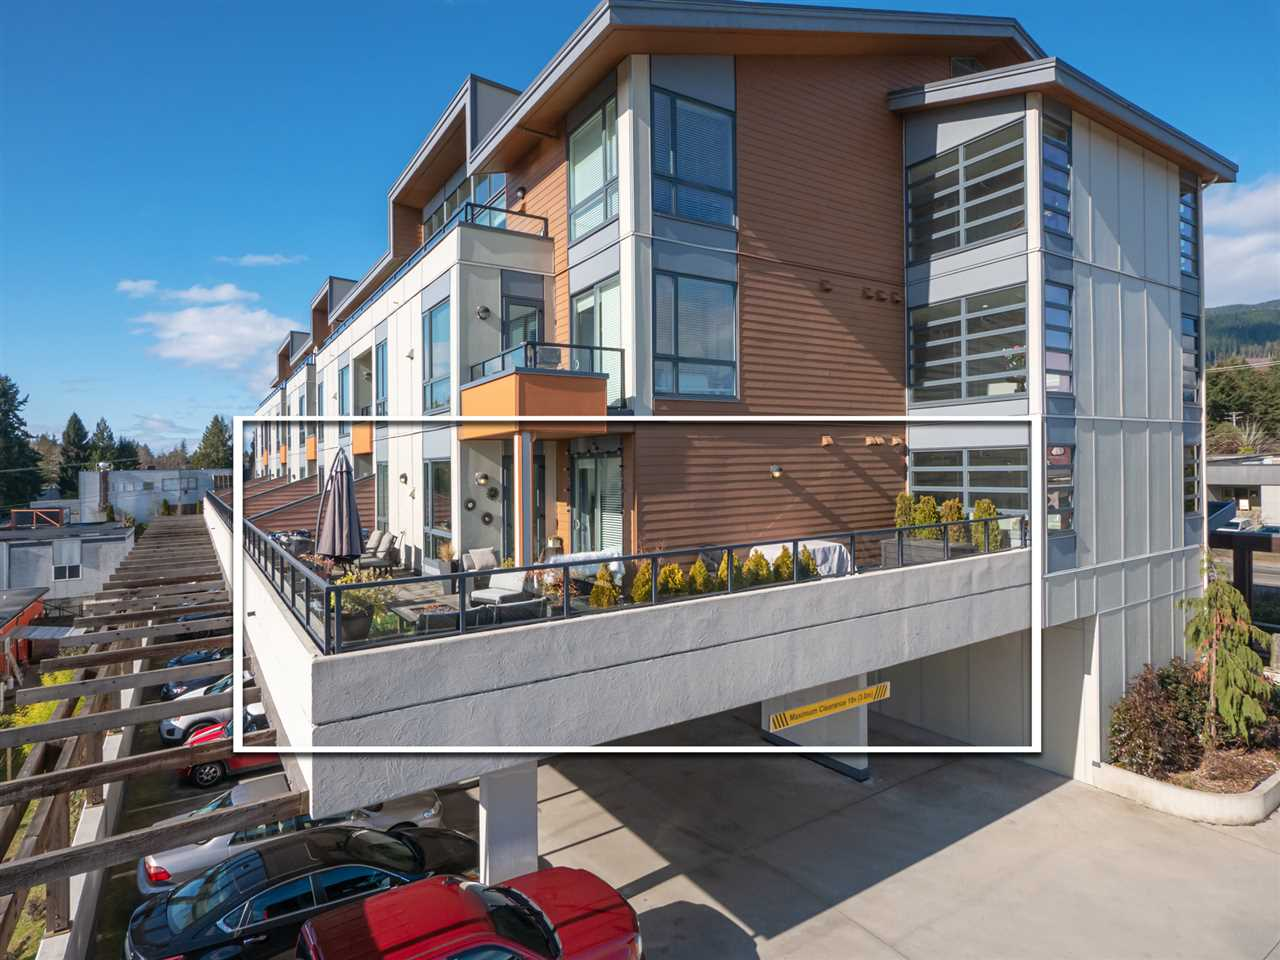 210 210 875 GIBSONS WAY - Gibsons & Area Apartment/Condo for sale, 2 Bedrooms (R2542139) - #26